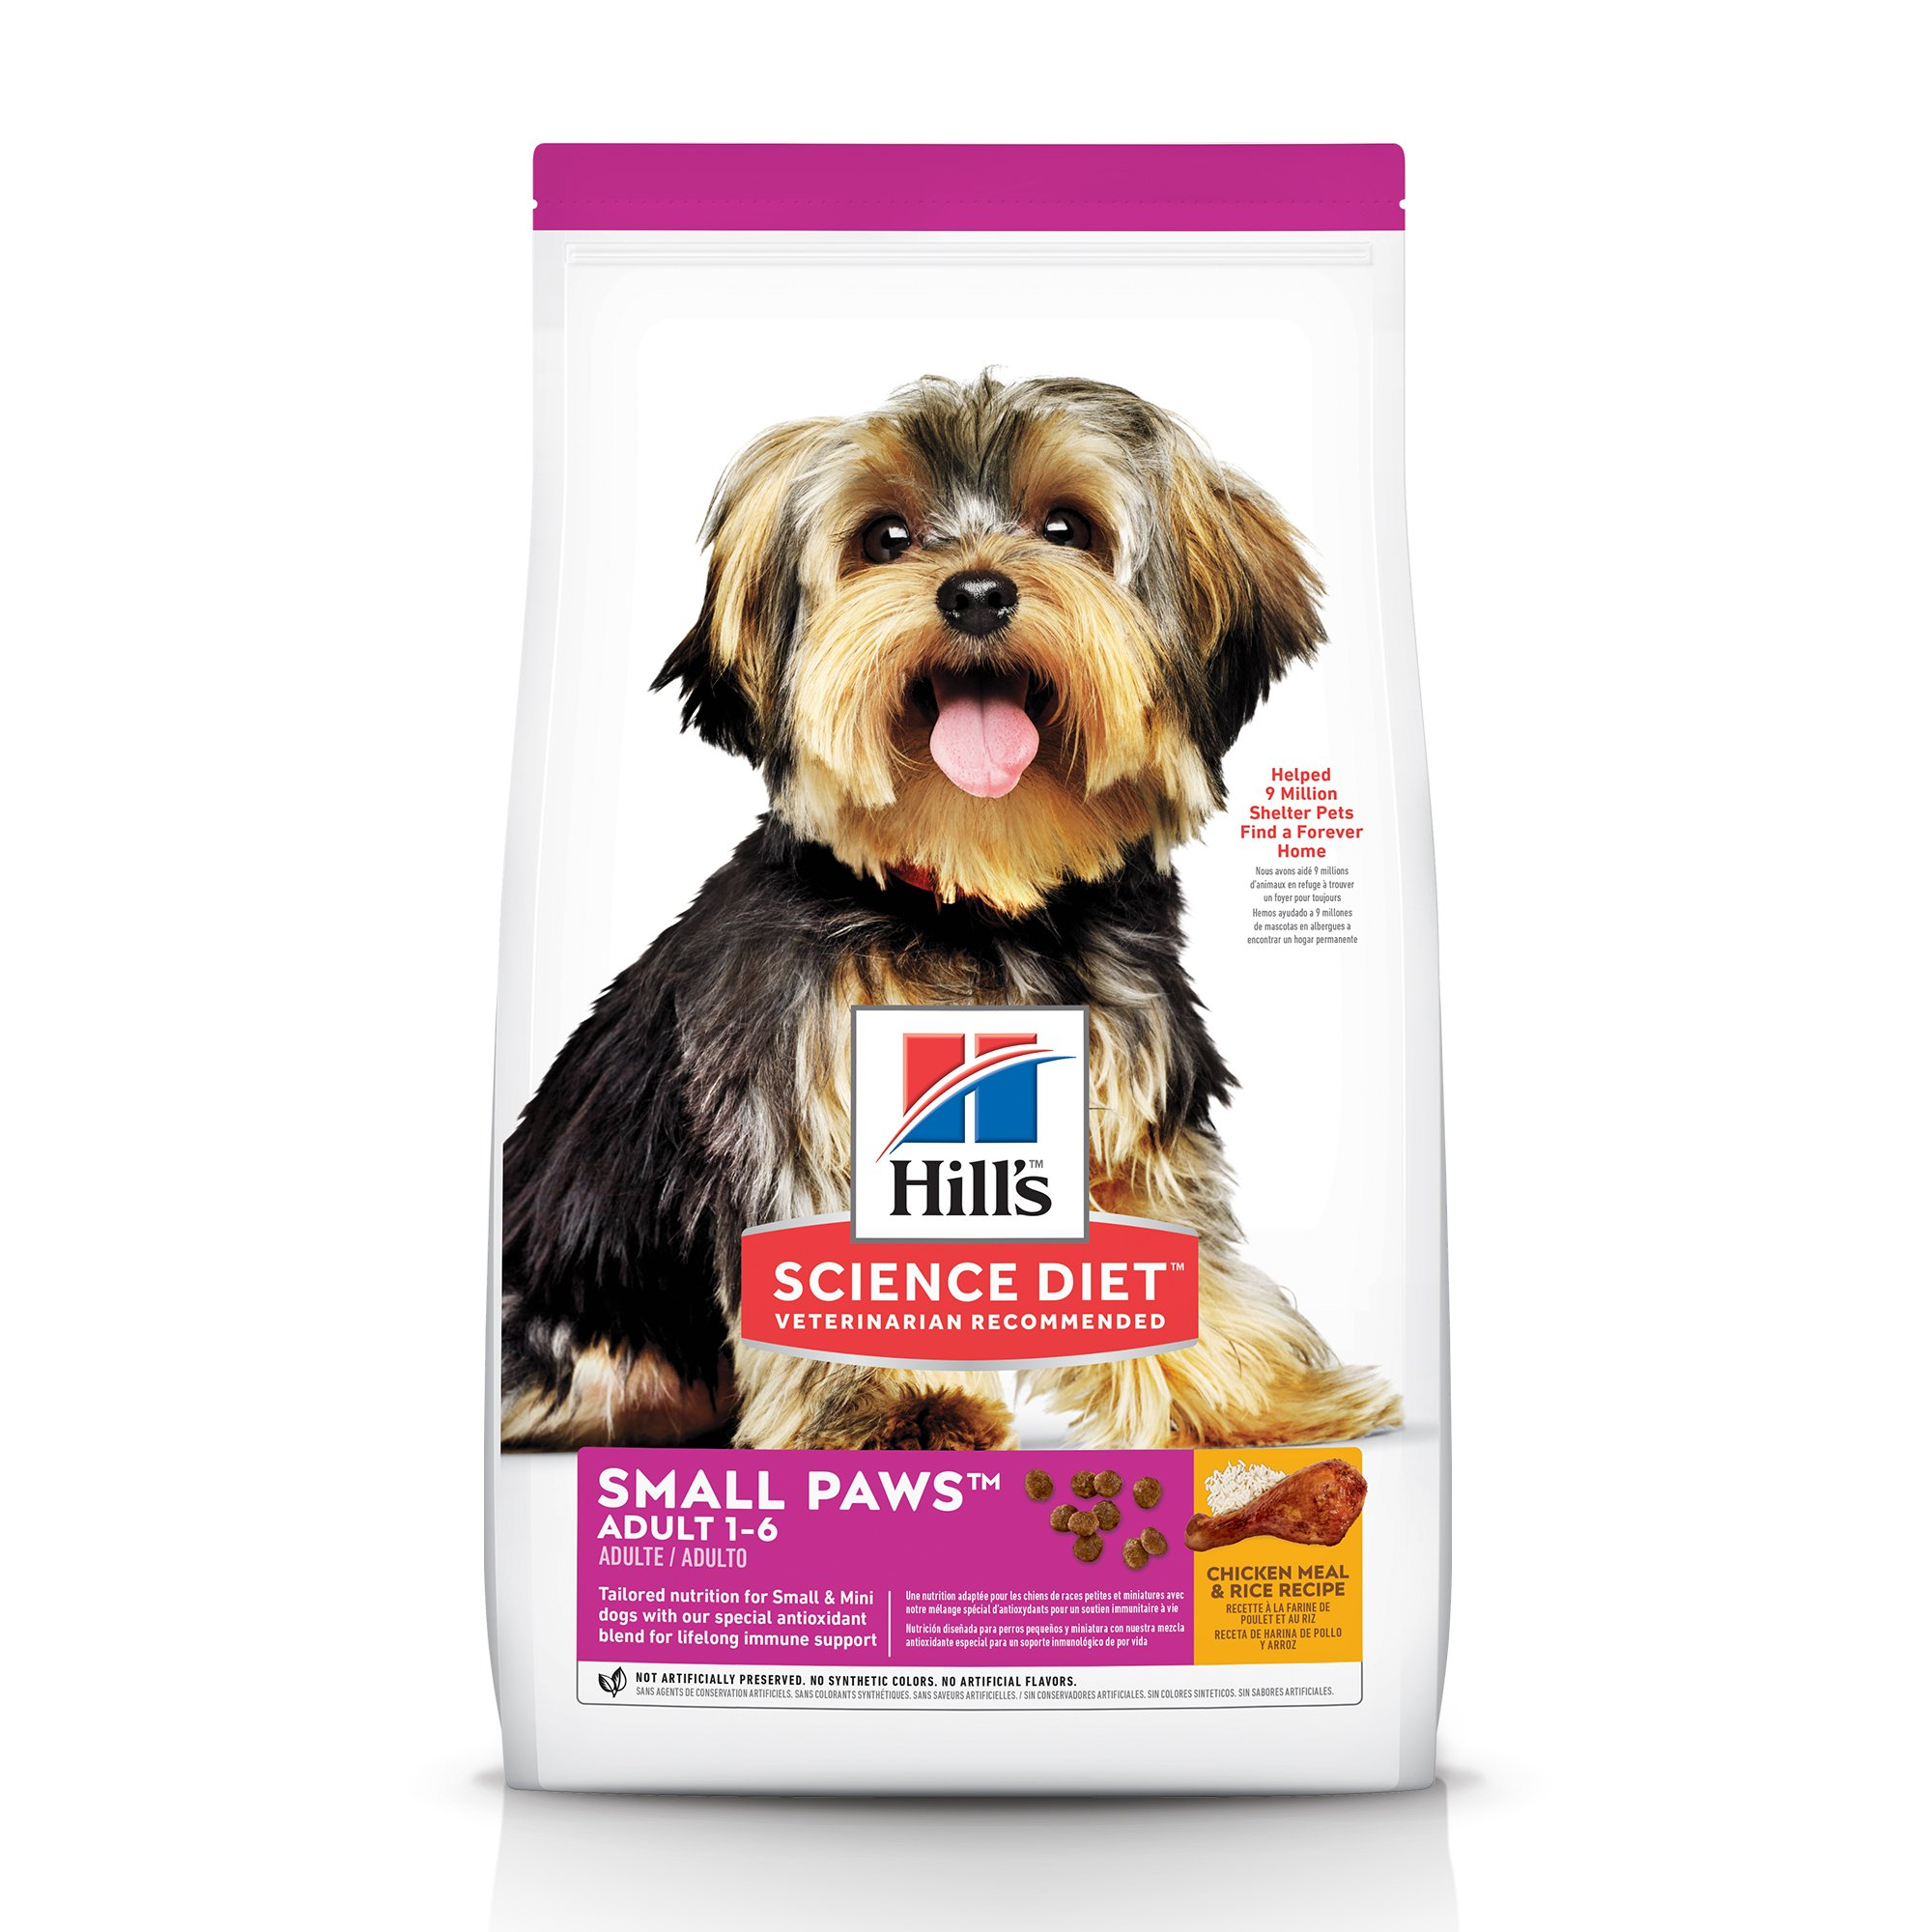 Hill's Science Diet Adult Small Paws Chicken Meal & Rice Recipe Dry Dog  Food, 15 5 lbs  | Petco